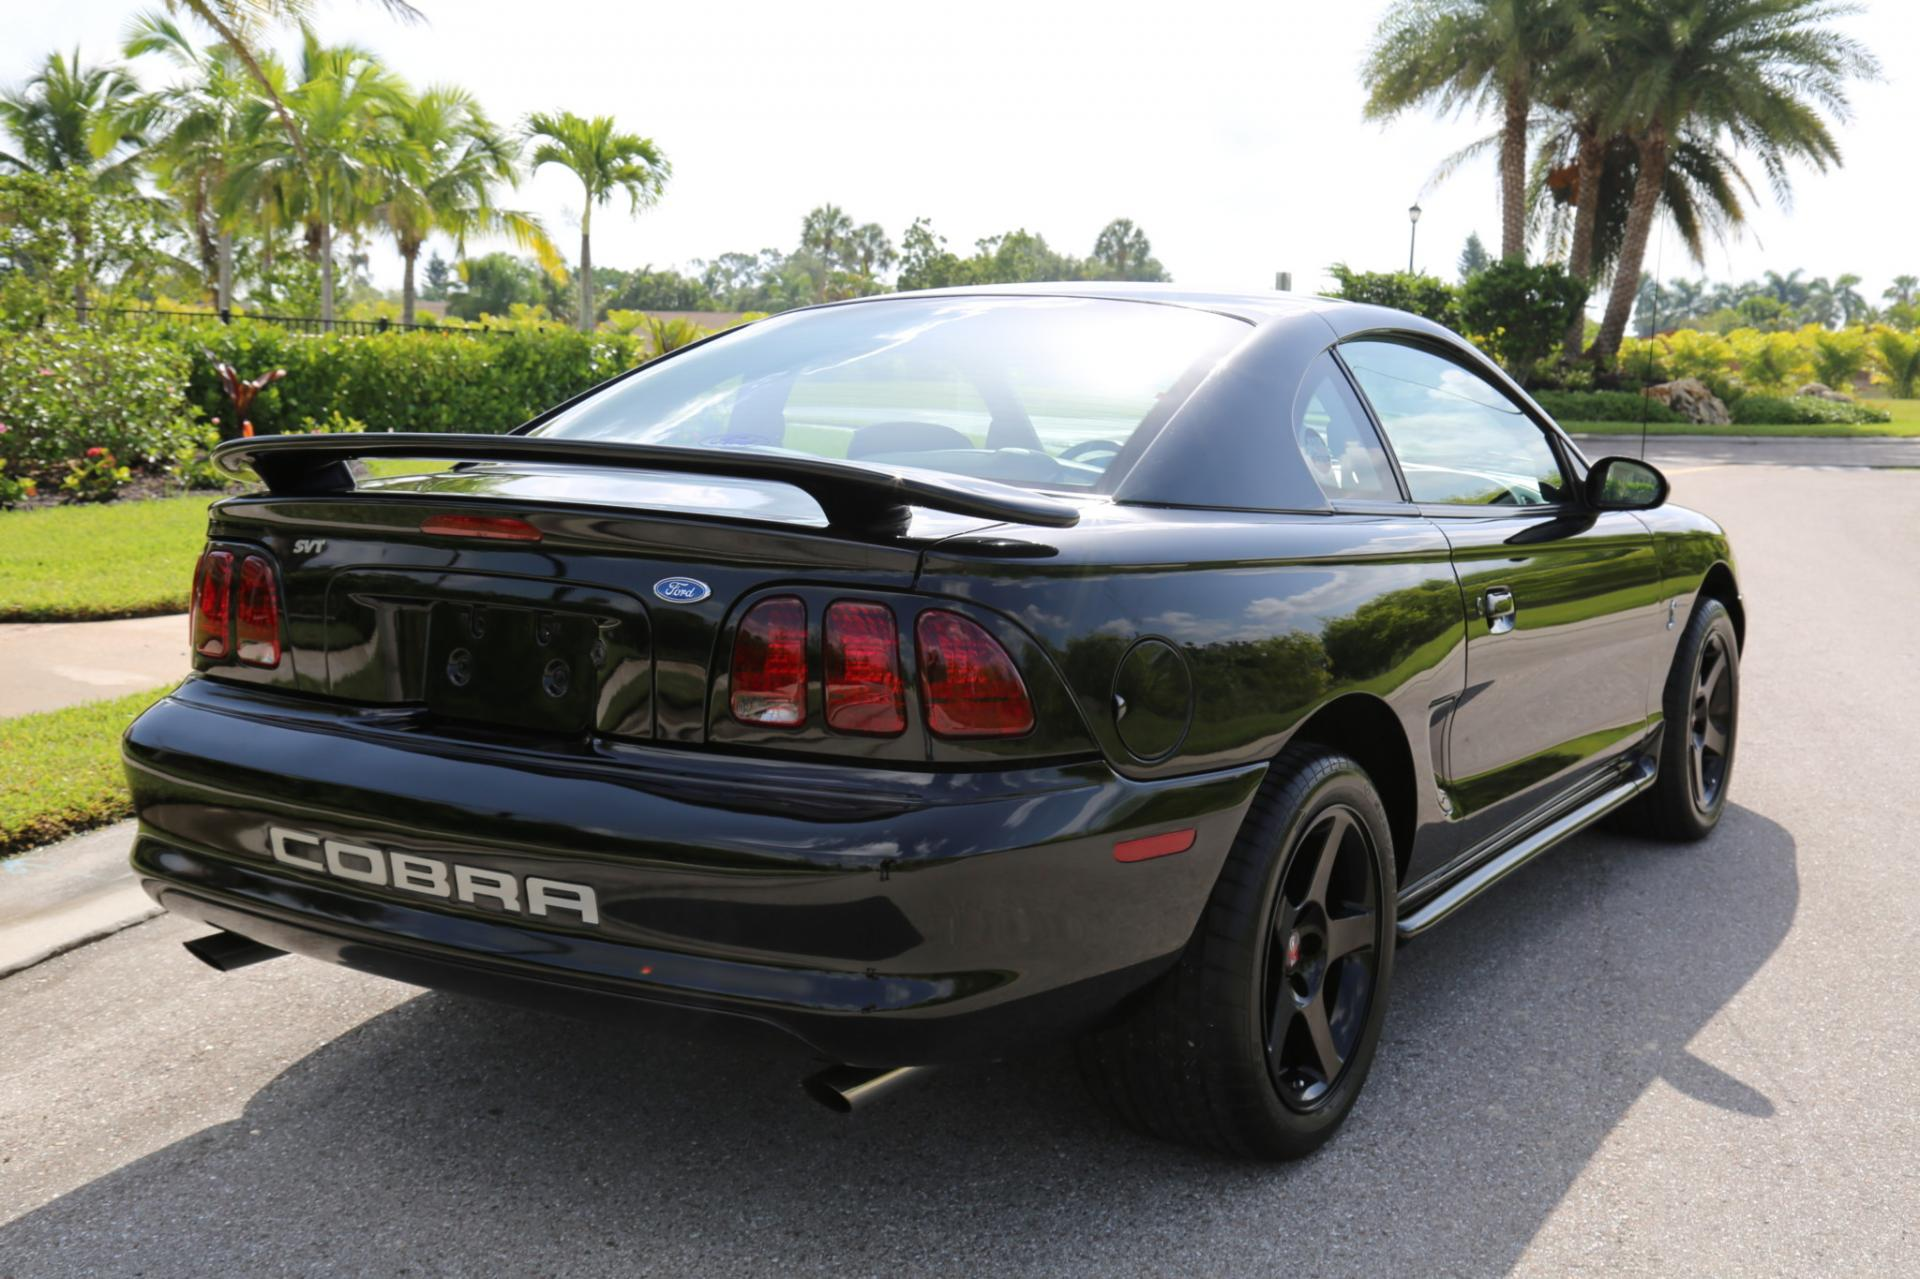 Used 1996 Mustang Cobra SVT Cobra for sale Sold at Muscle Cars for Sale Inc. in Fort Myers FL 33912 5